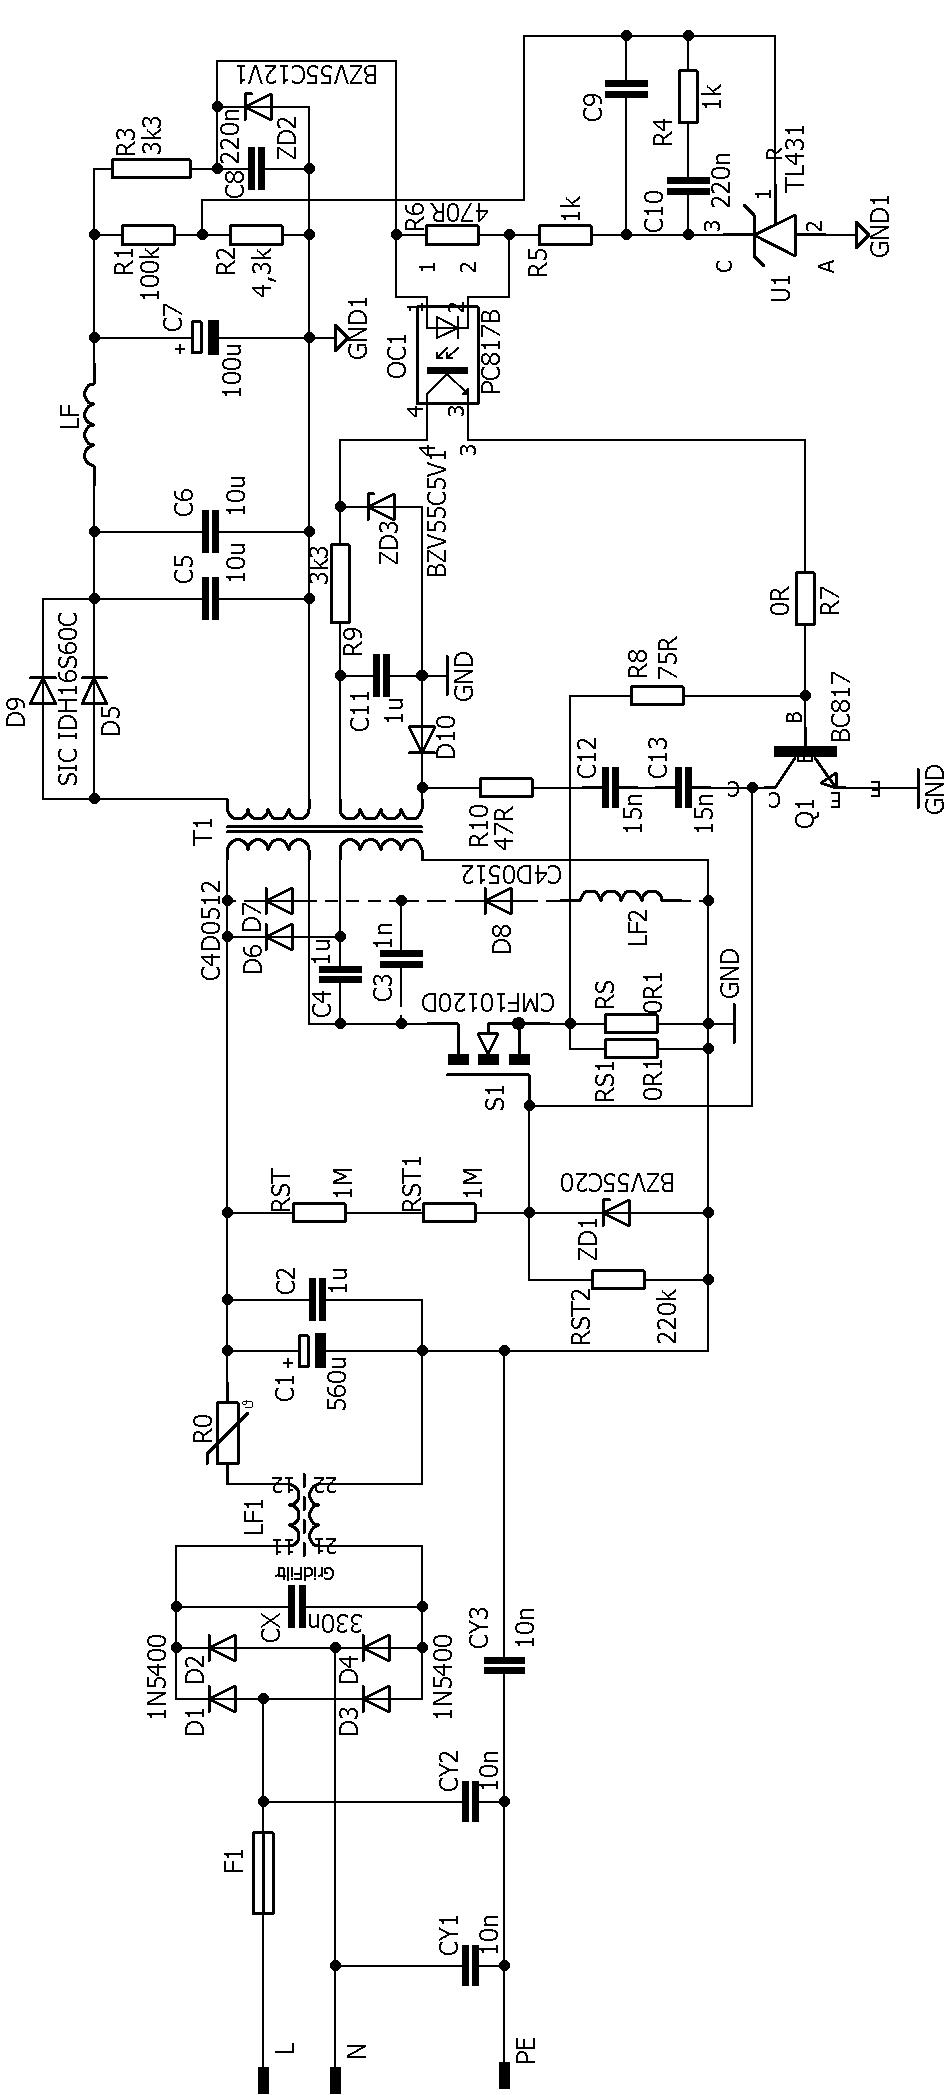 hight resolution of self oscillating smps circuit flyback 600w 60v 120khz 600w smps circuit schematic self oscillating smps 120x120